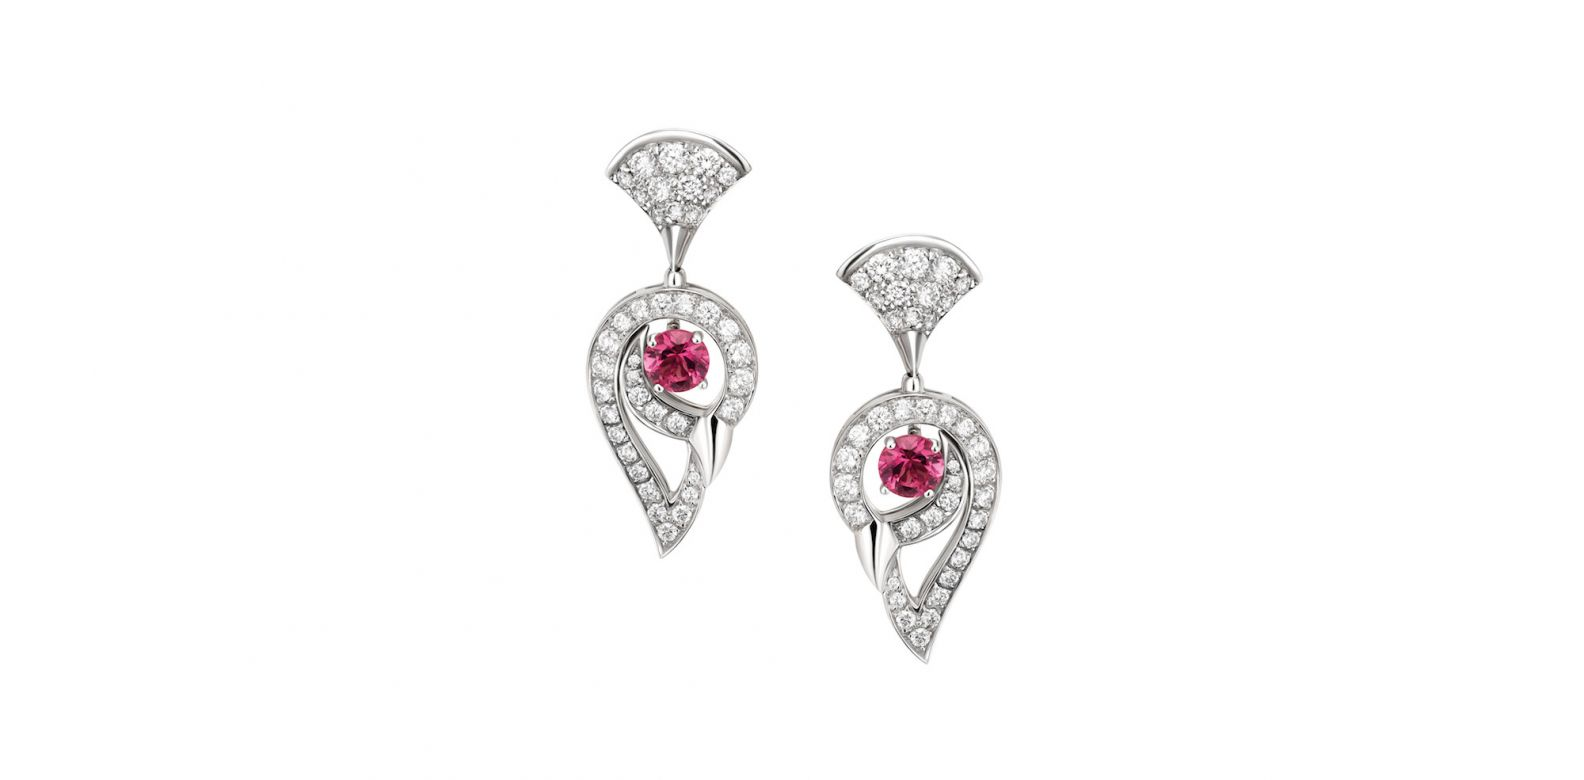 Earrings in white gold with rubellite and diamonds (0.98ct)